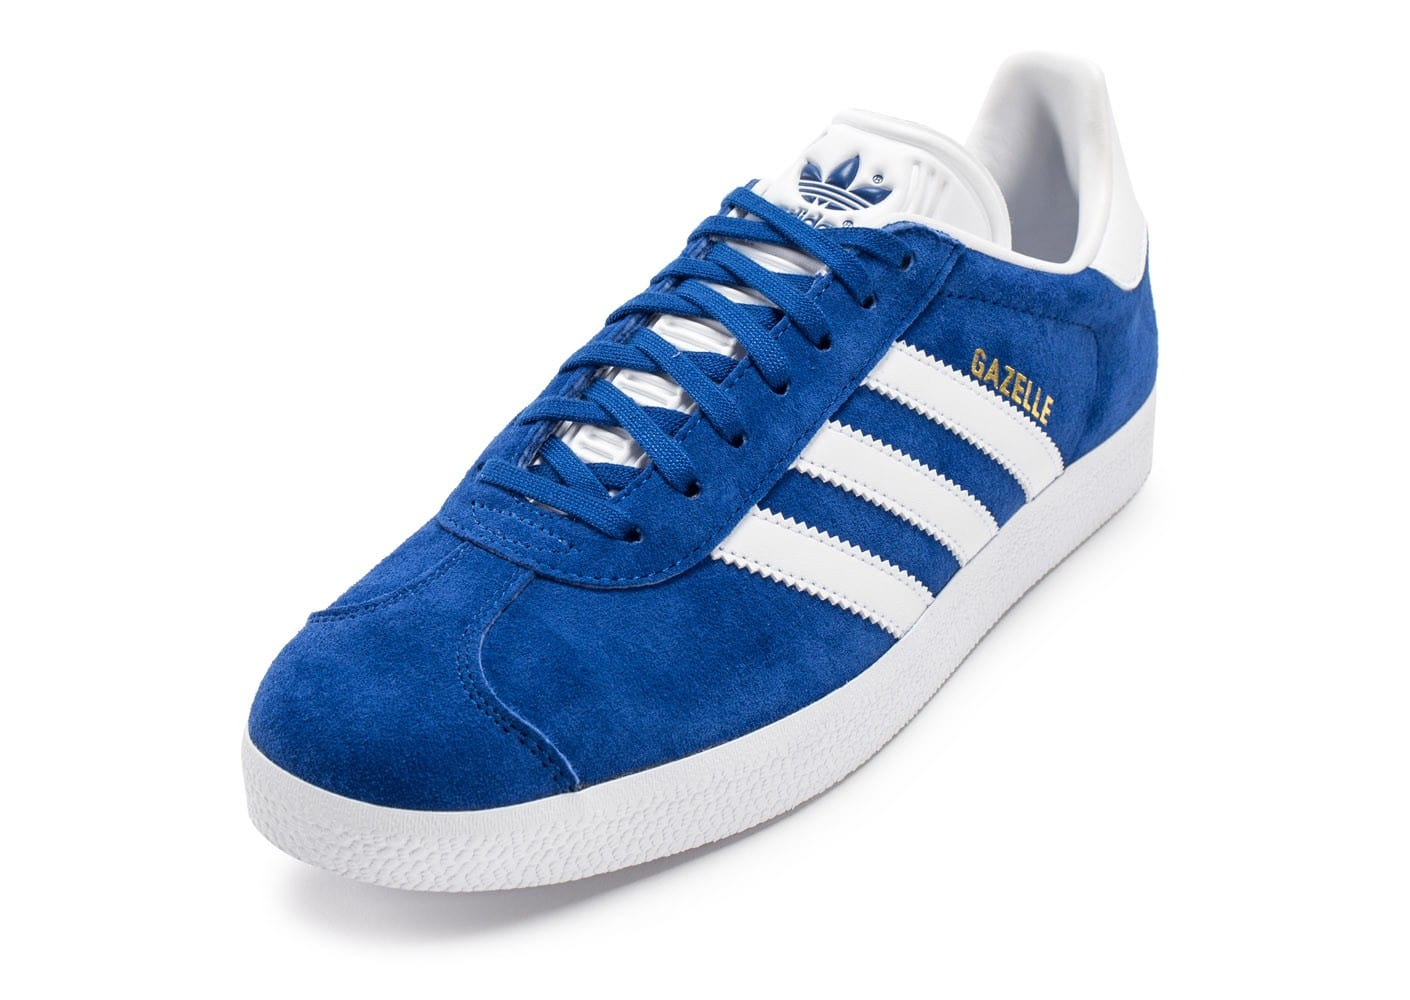 adidas gazelle 2 bleu chaussures baskets homme chausport. Black Bedroom Furniture Sets. Home Design Ideas